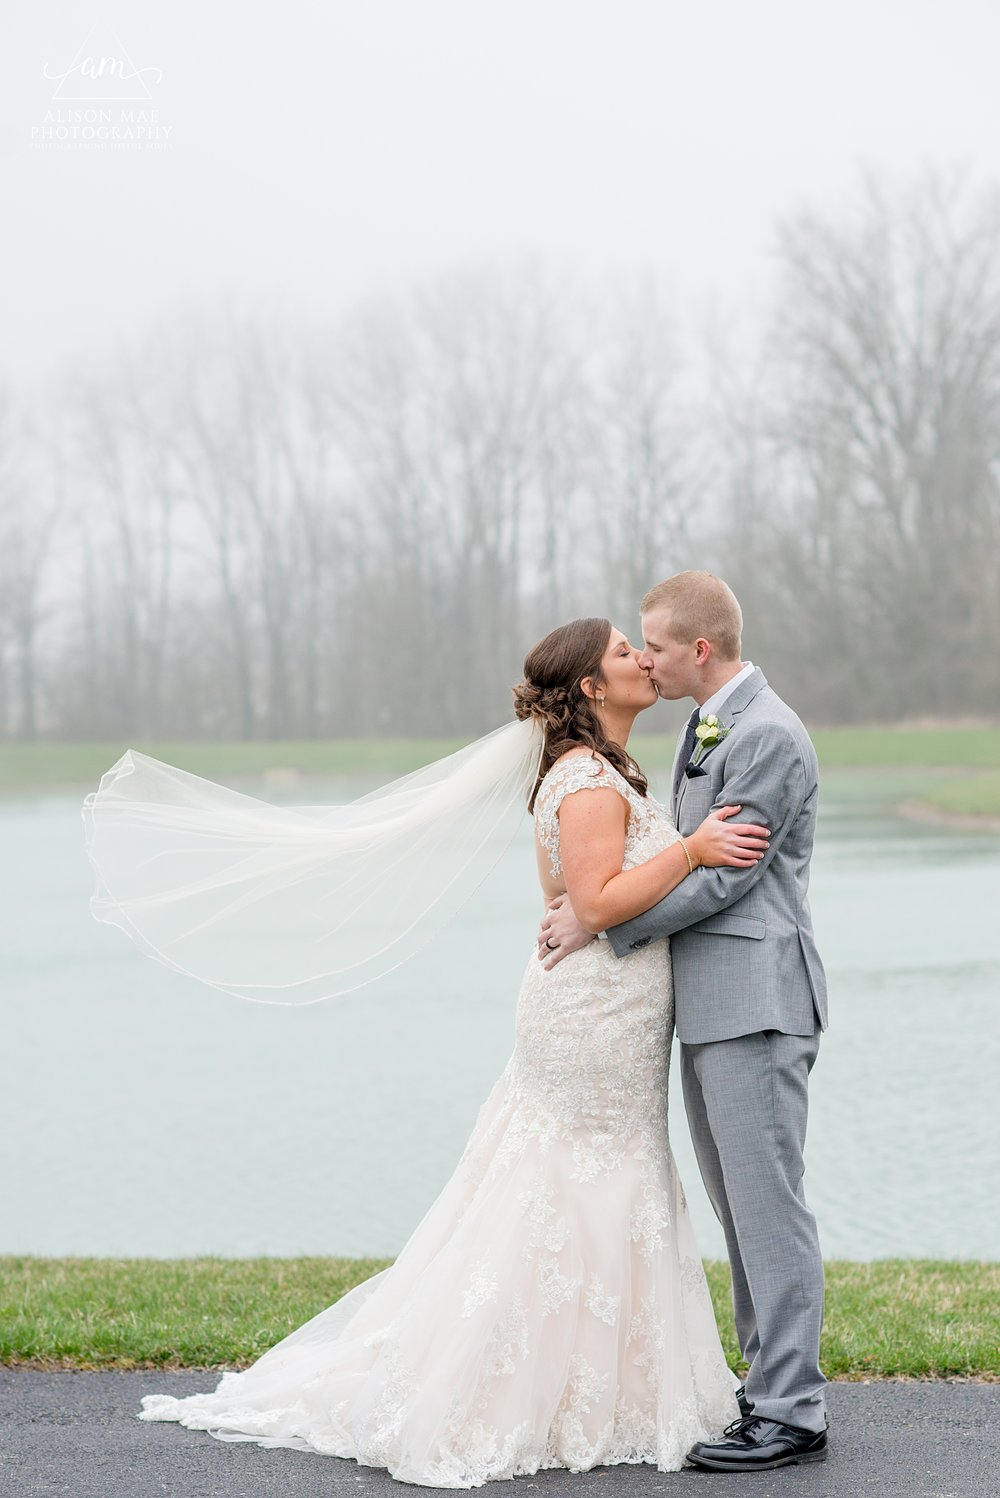 Fun Colorful Joyful Indiana Wedding Photographer - Indianapolis - Alison Mae Photography_4484.jpg